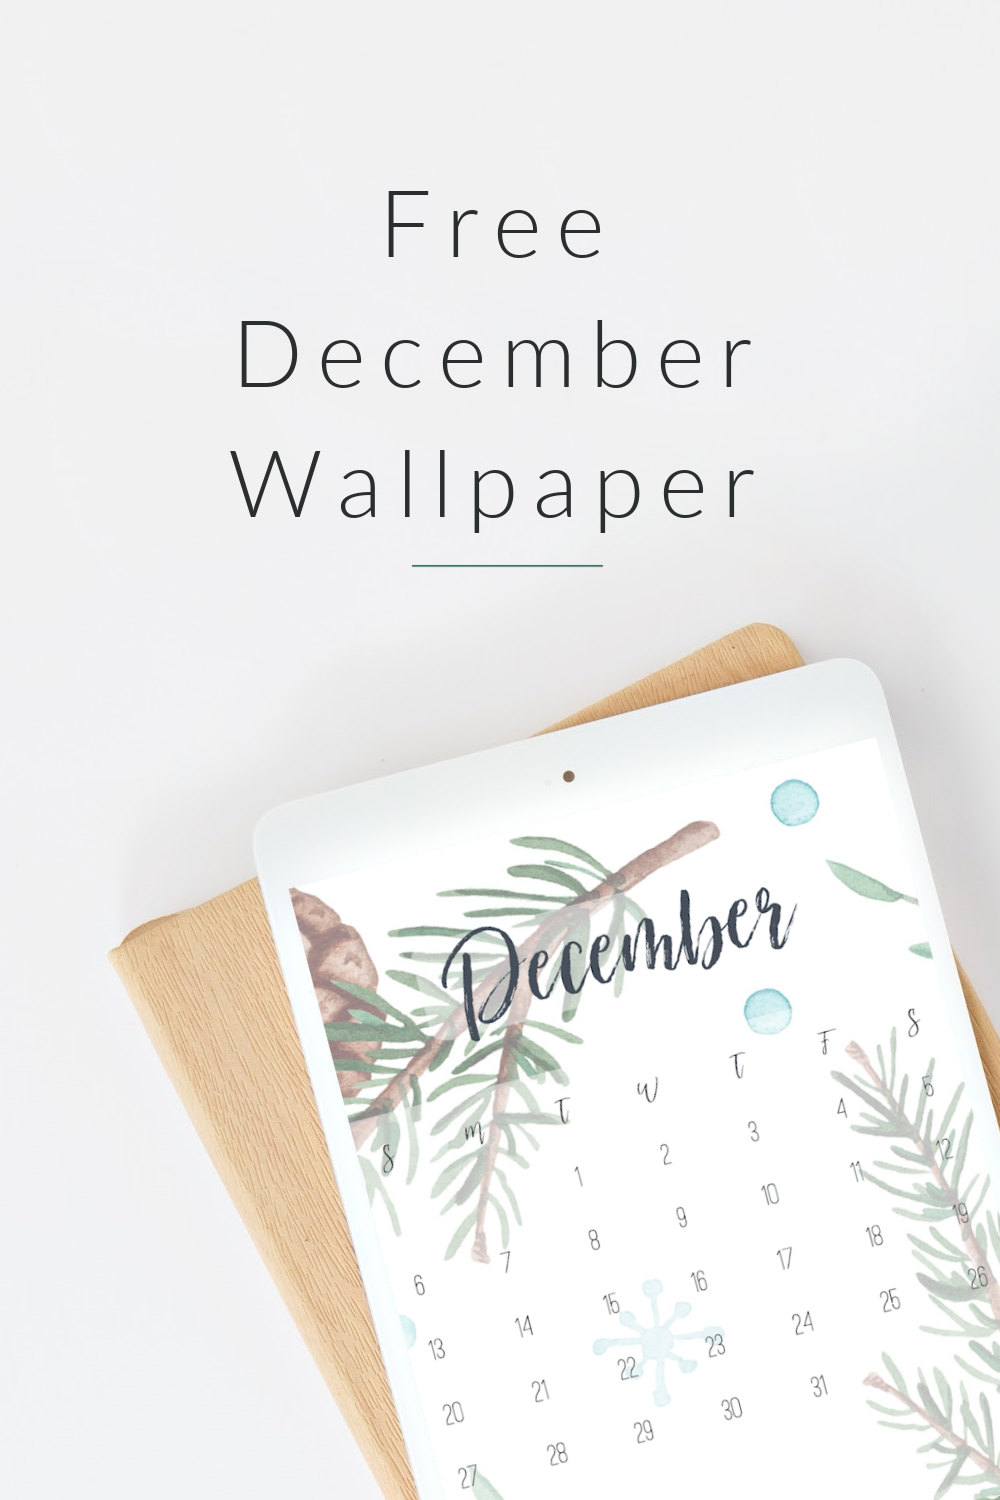 Free December Wallpaper For Phones, Tablets &  Computer